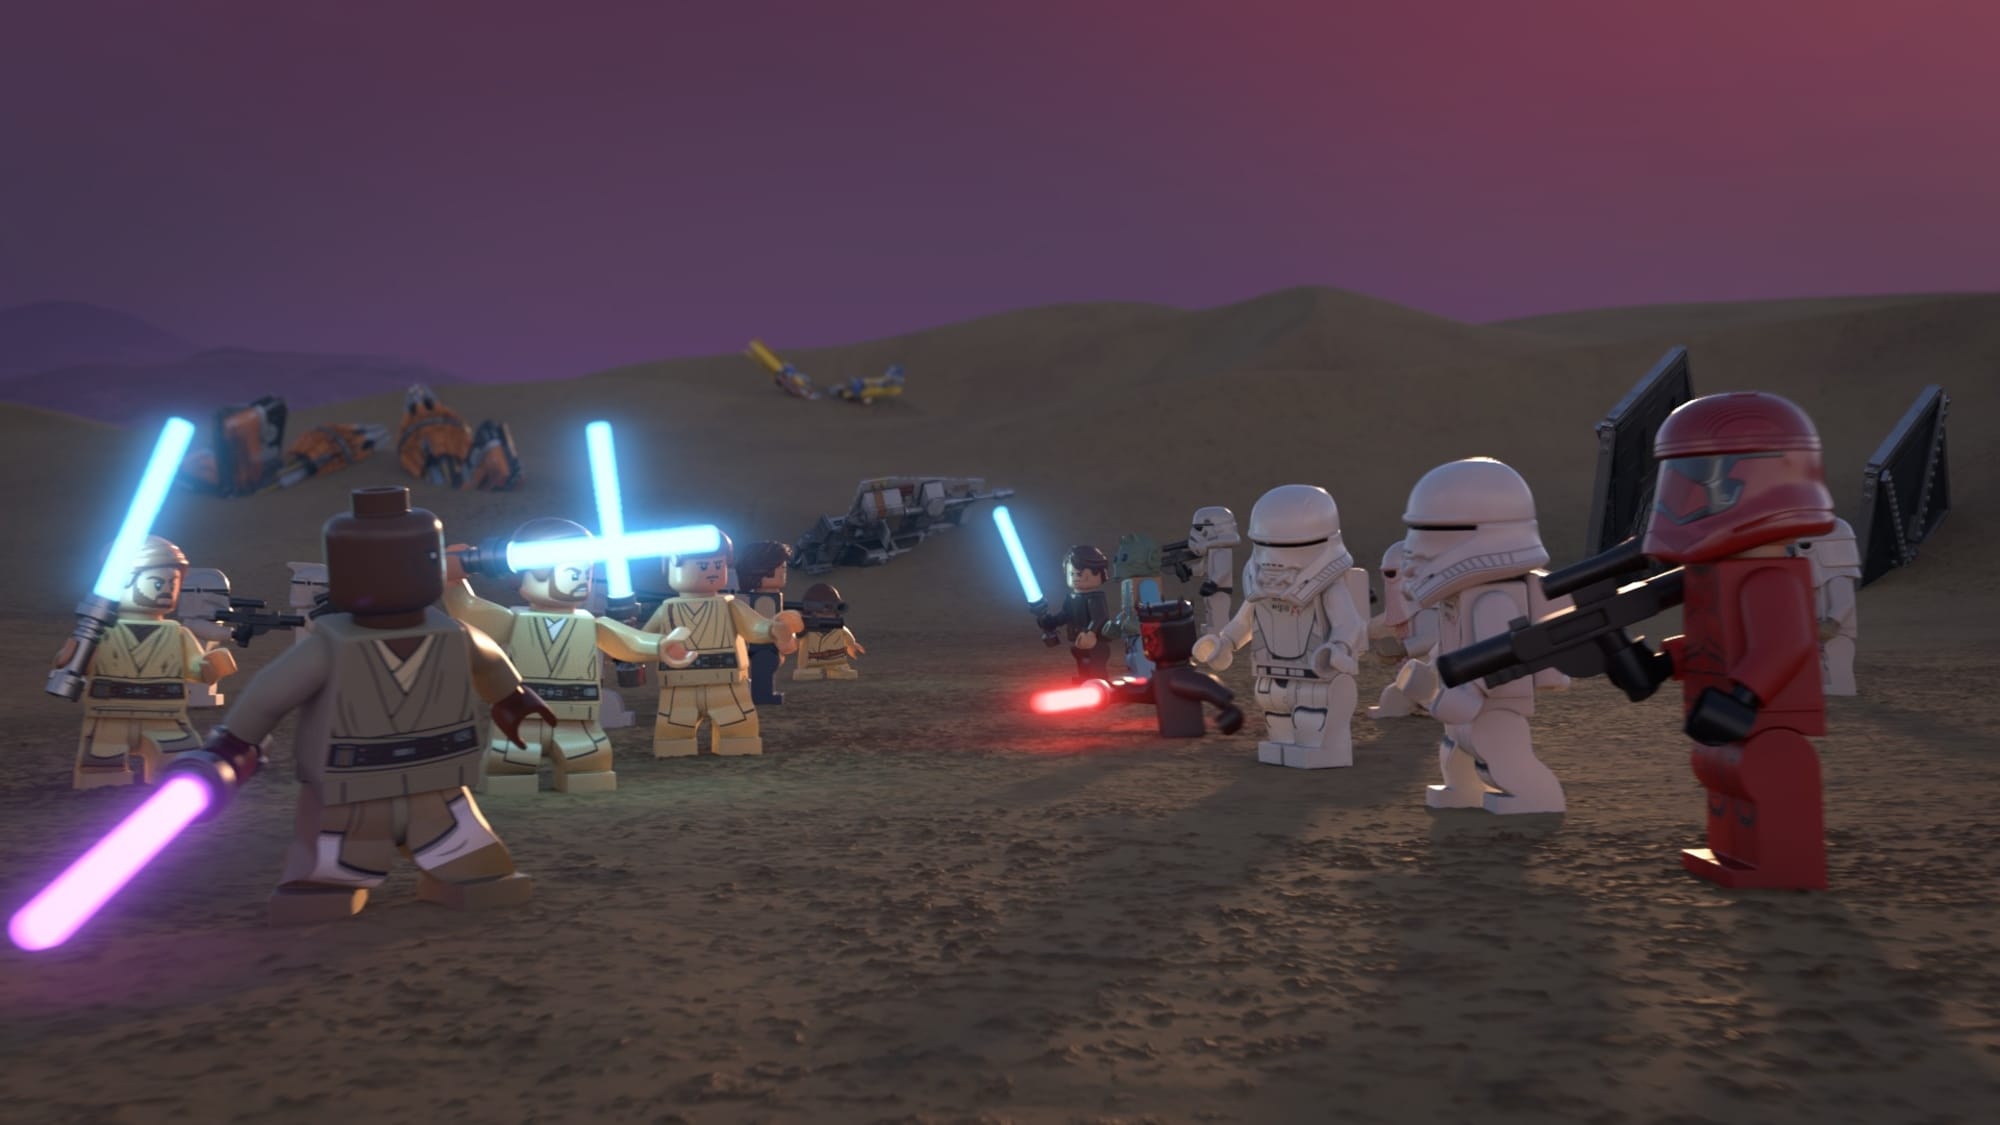 The LEGO Star Wars Holiday Special is coming to Disney+ on Life Day 14